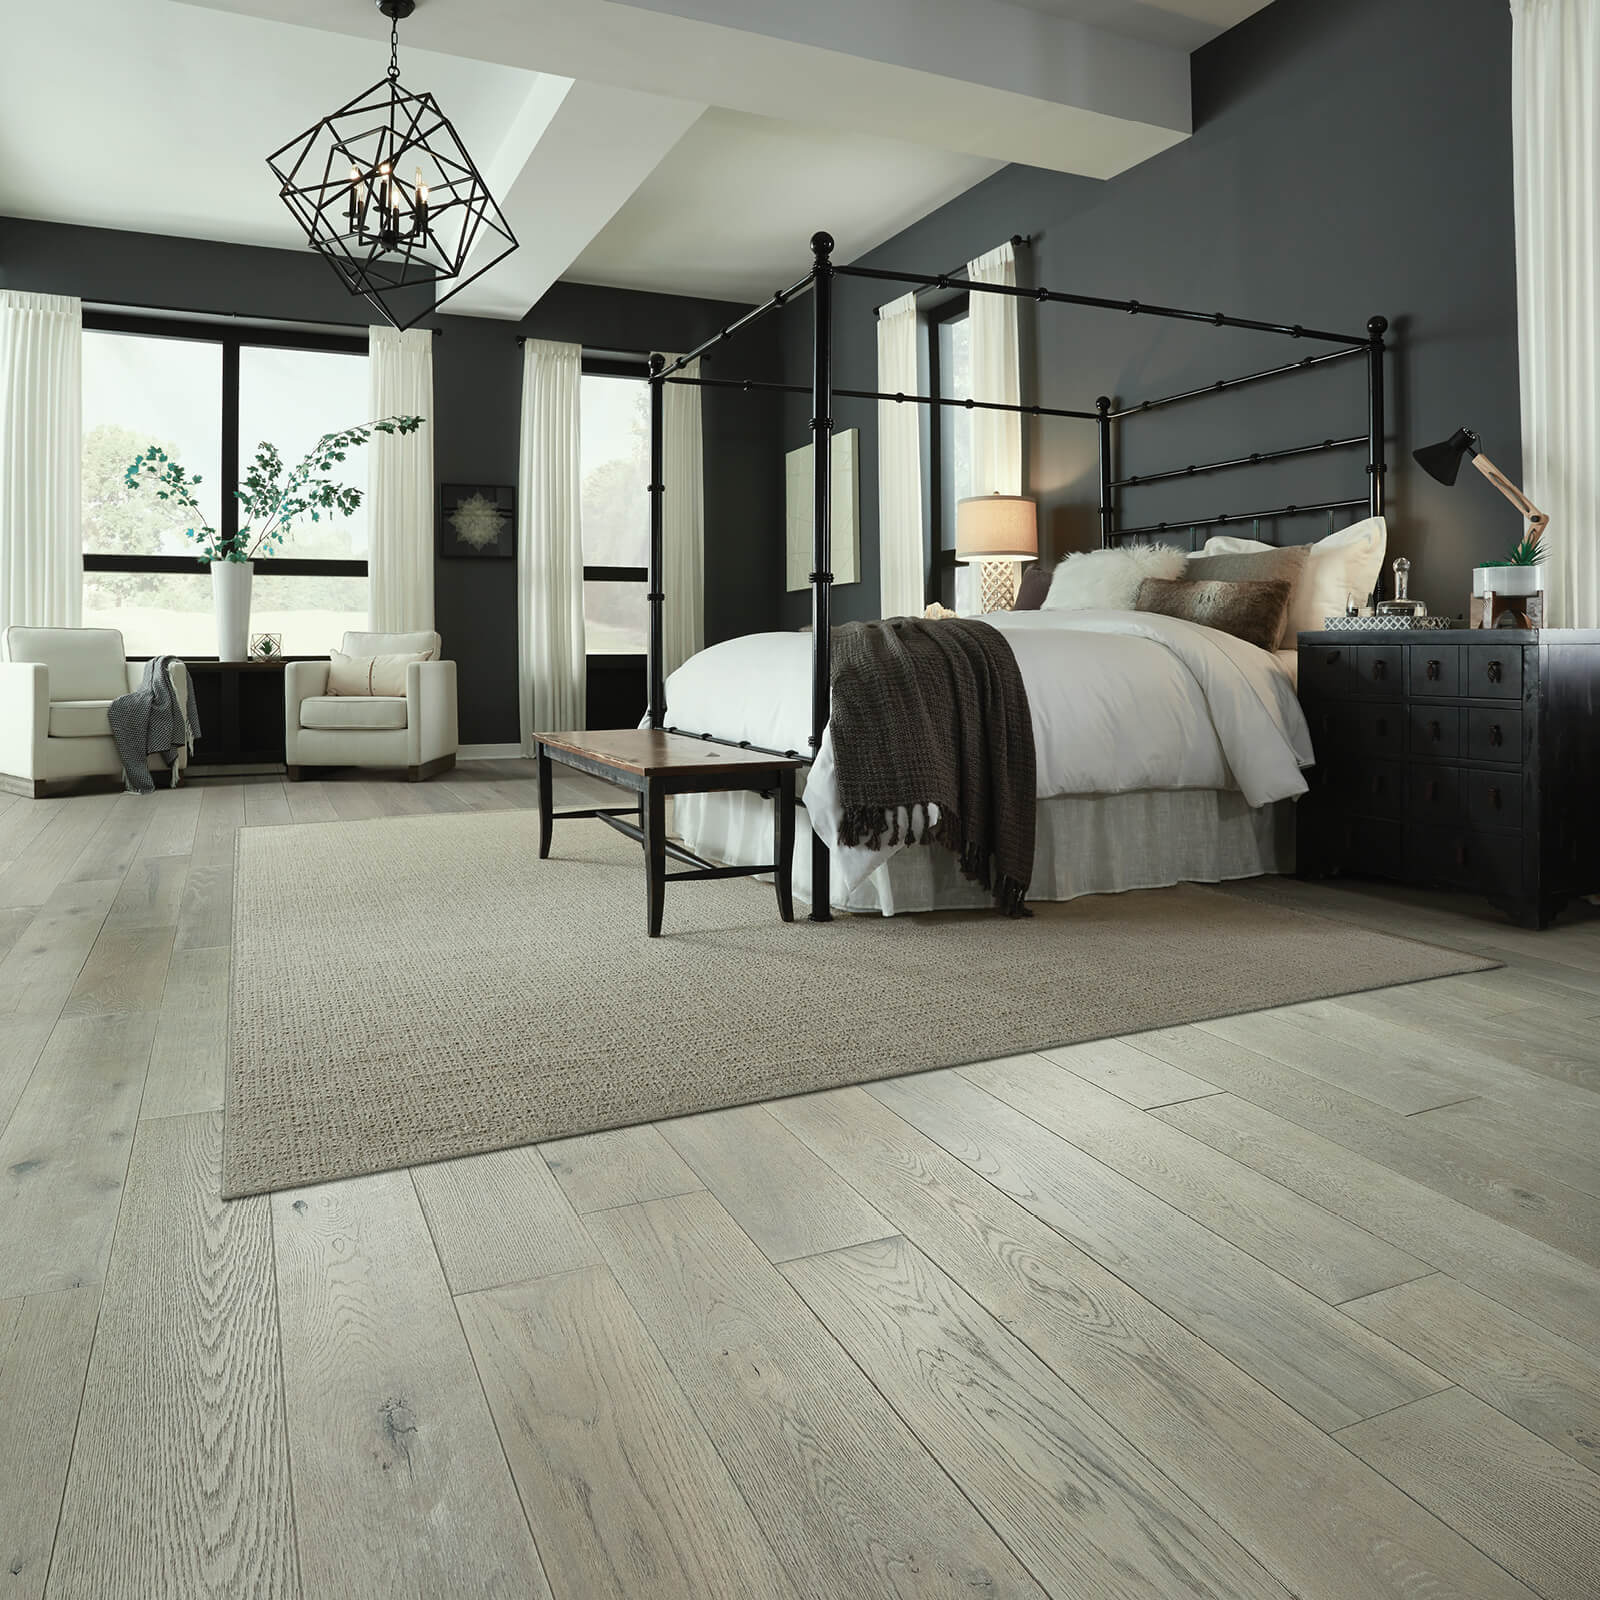 Hardwood flooring of bedroom | Shans Carpets And Fine Flooring Inc